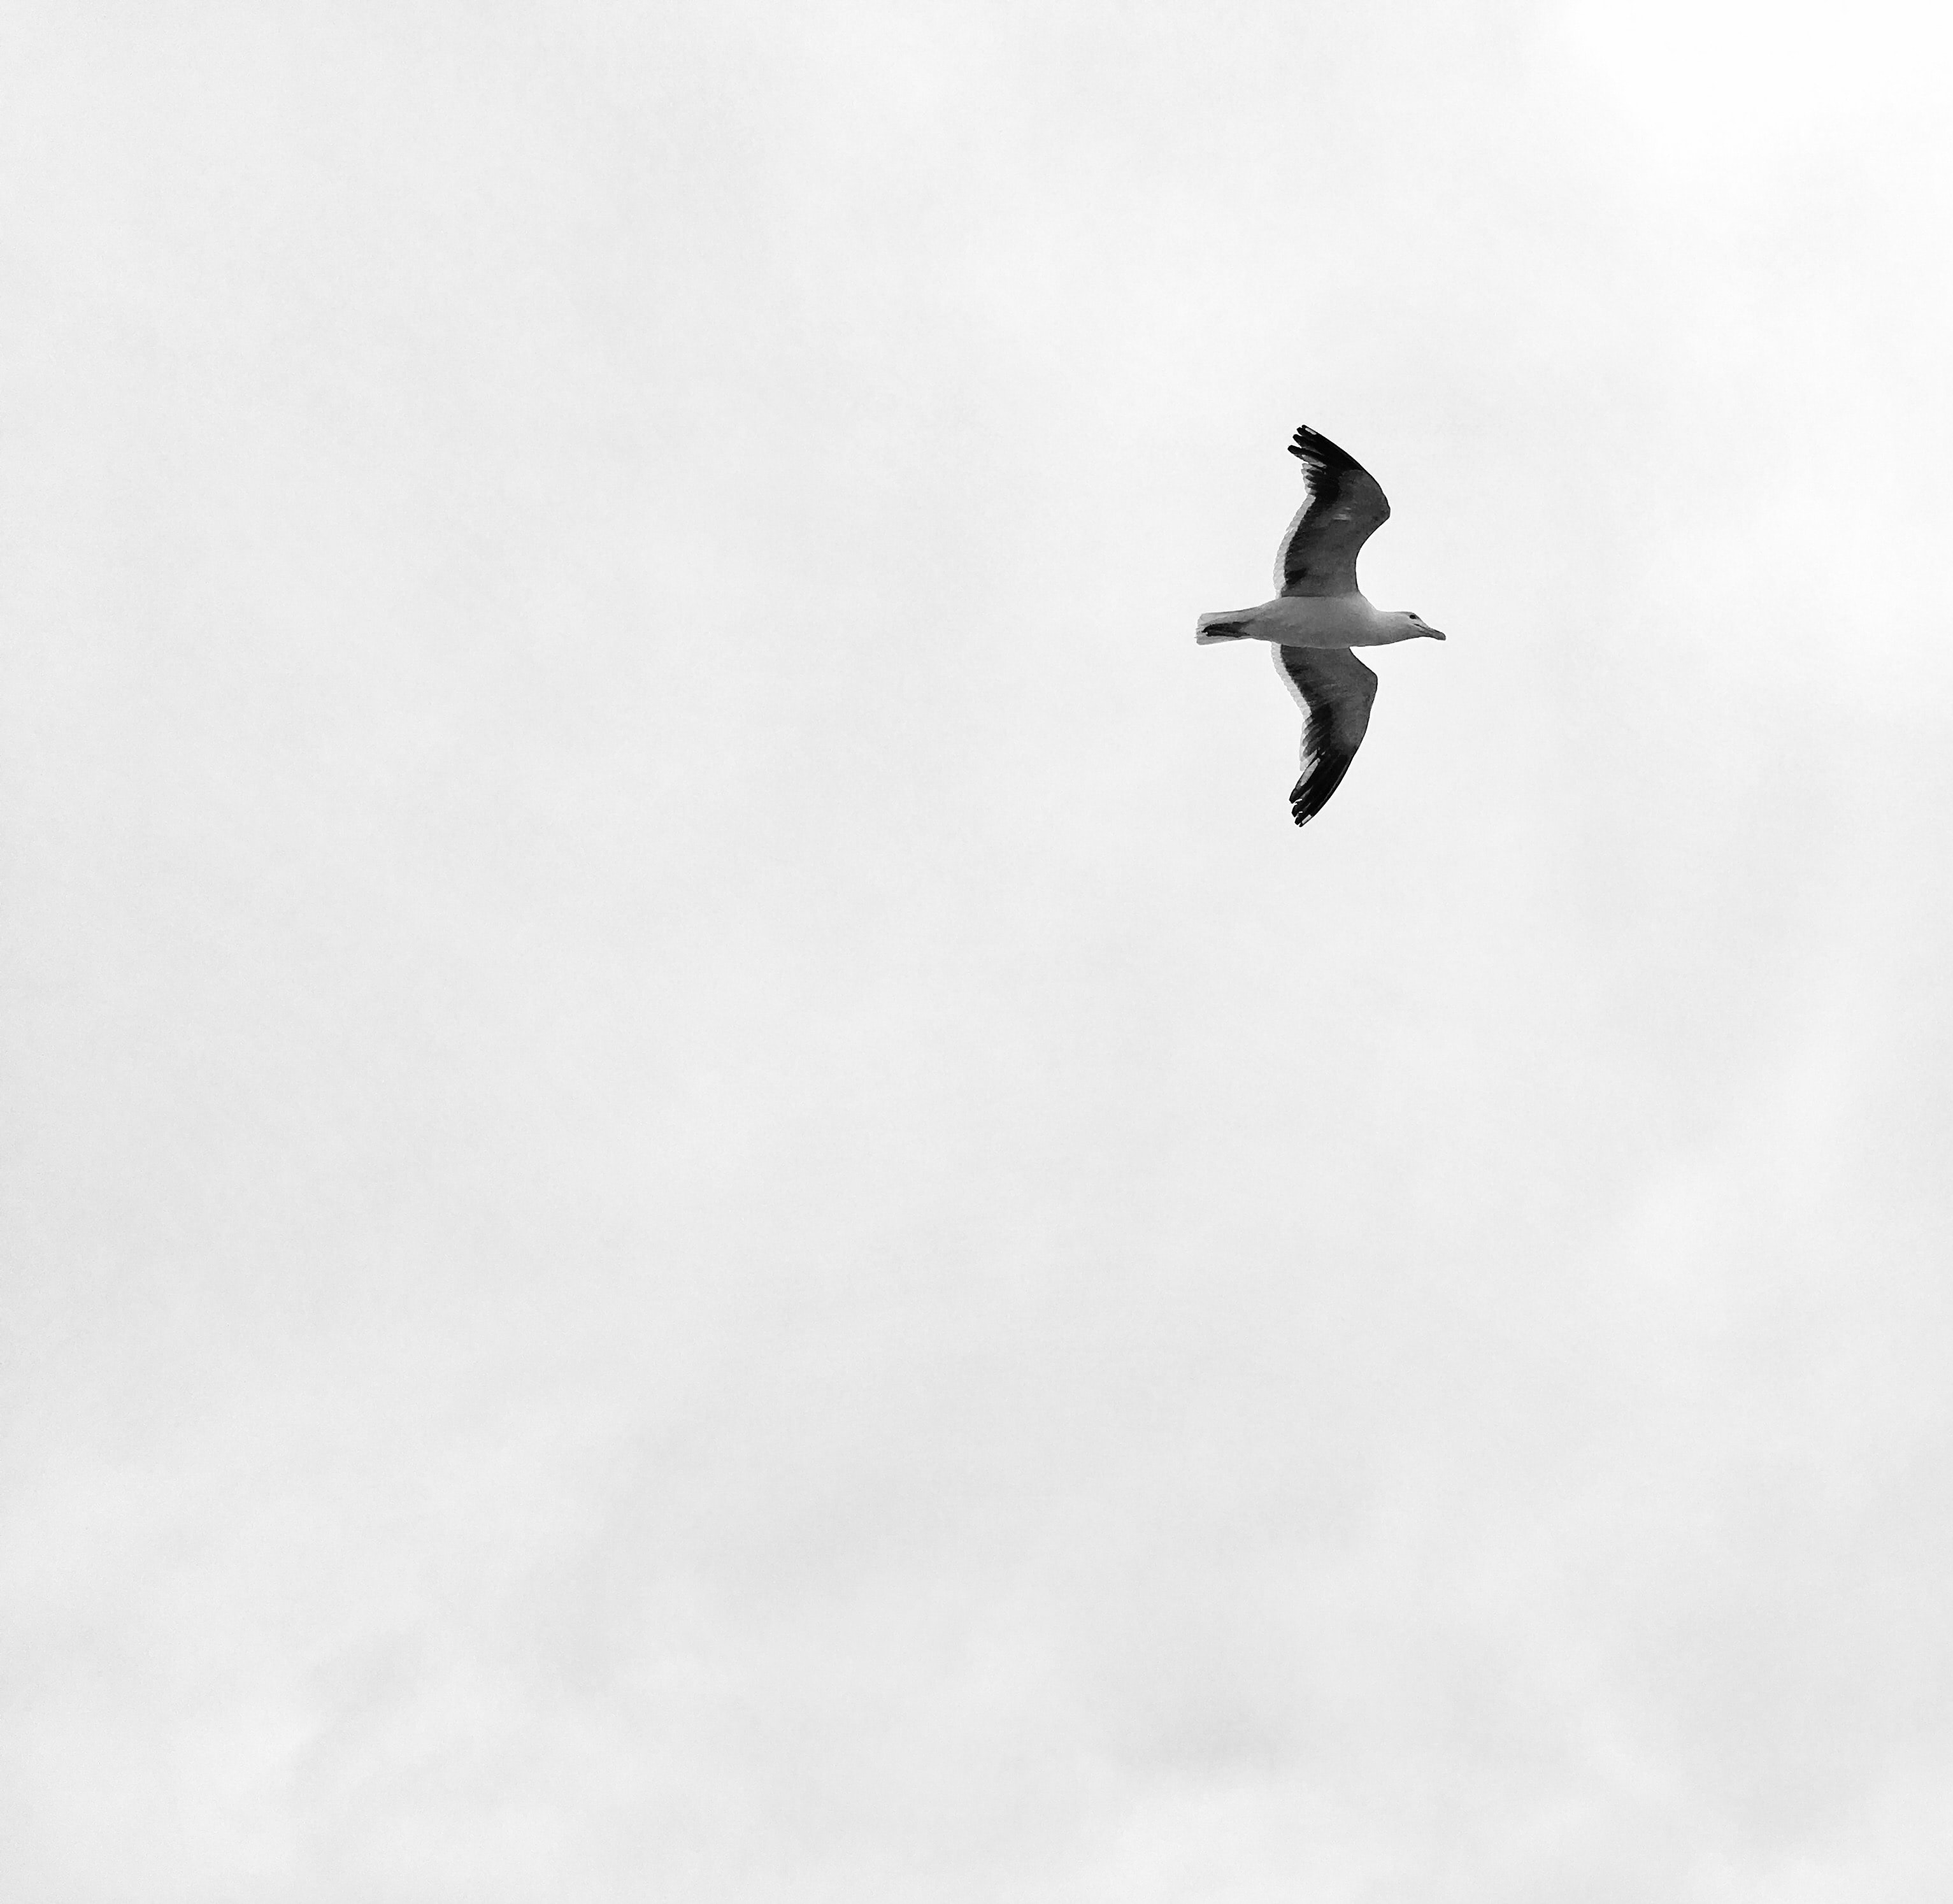 Seagull flying on a cloudy day at North Beach, San Francisco, California, United States